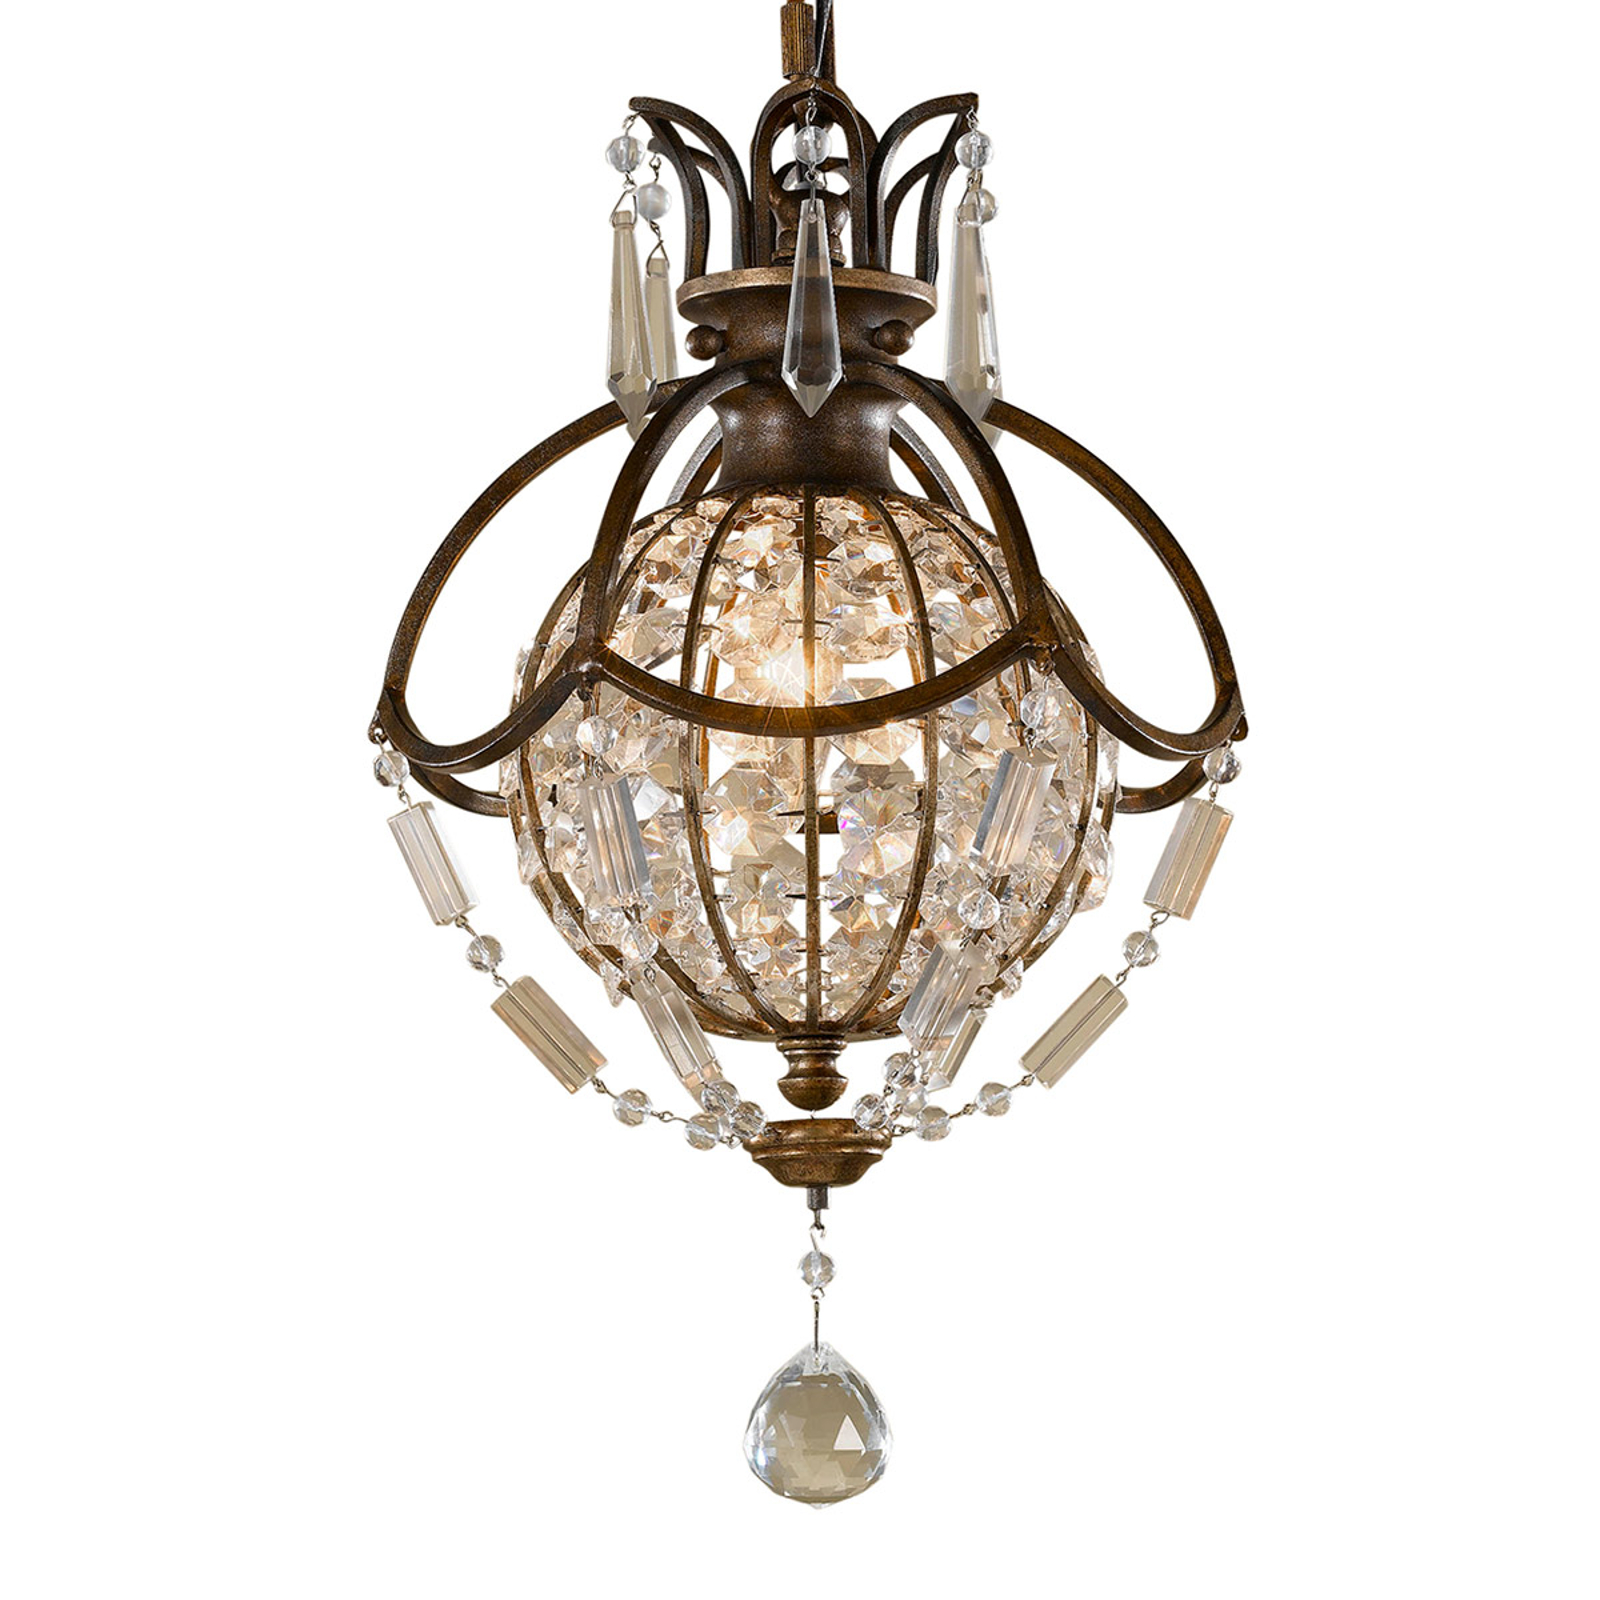 Bellini Hanging Light Tasteful_3048248_1